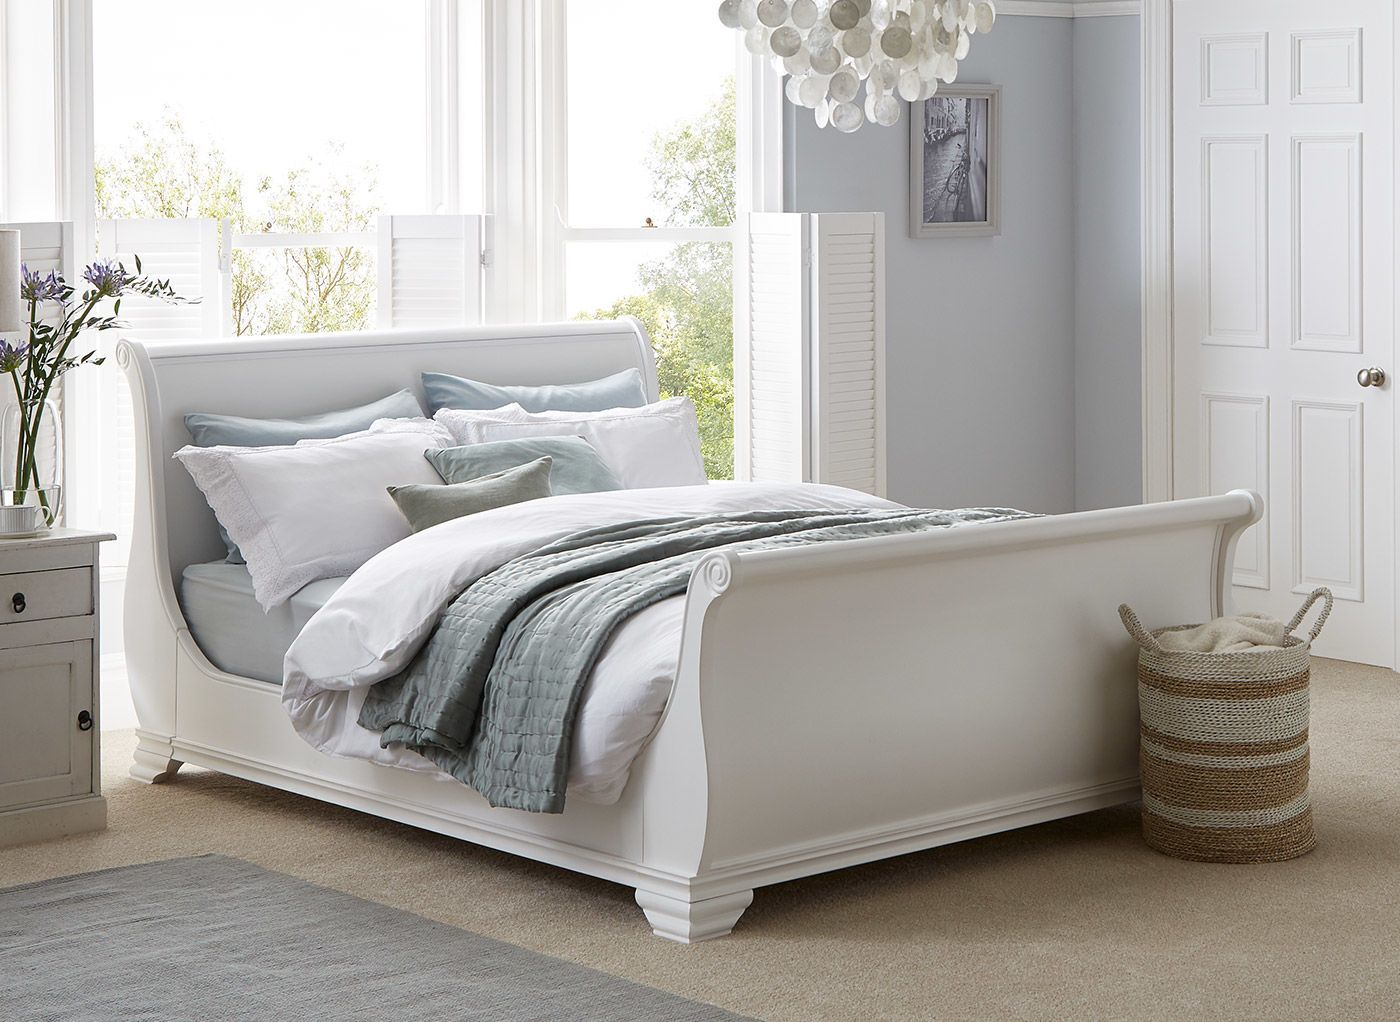 Find Your Lost Peace Of Night With White Beds Darbylanefurniture Com In 2020 White Wooden Bed Wooden Bed Wooden Bed Frames